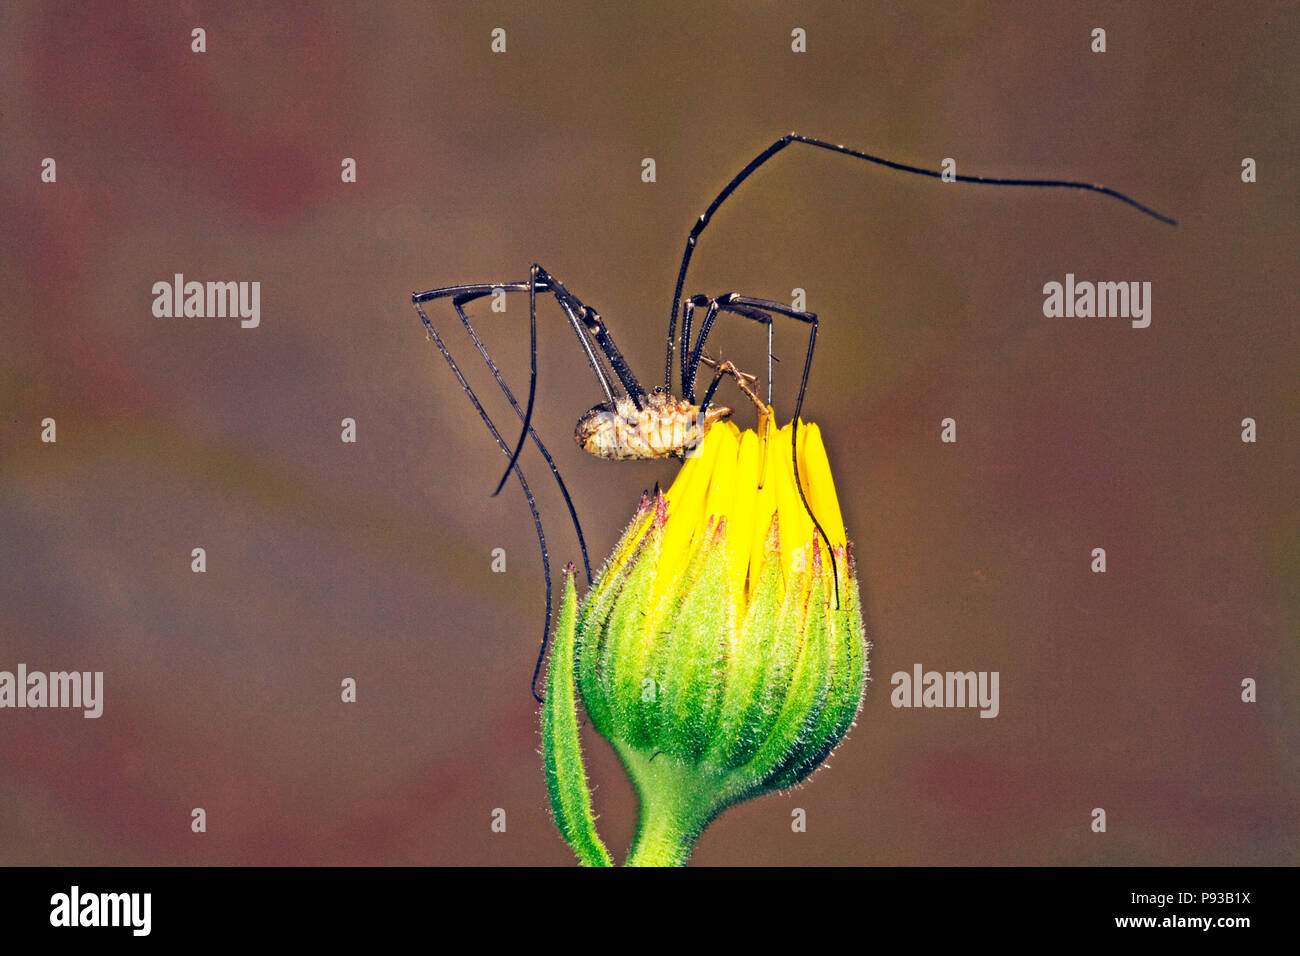 A harvestman, or daddy long egs, an arachnid, although not a spider, on a wildflower in central Oregon. They are carniverous but not posionous. - Stock Image